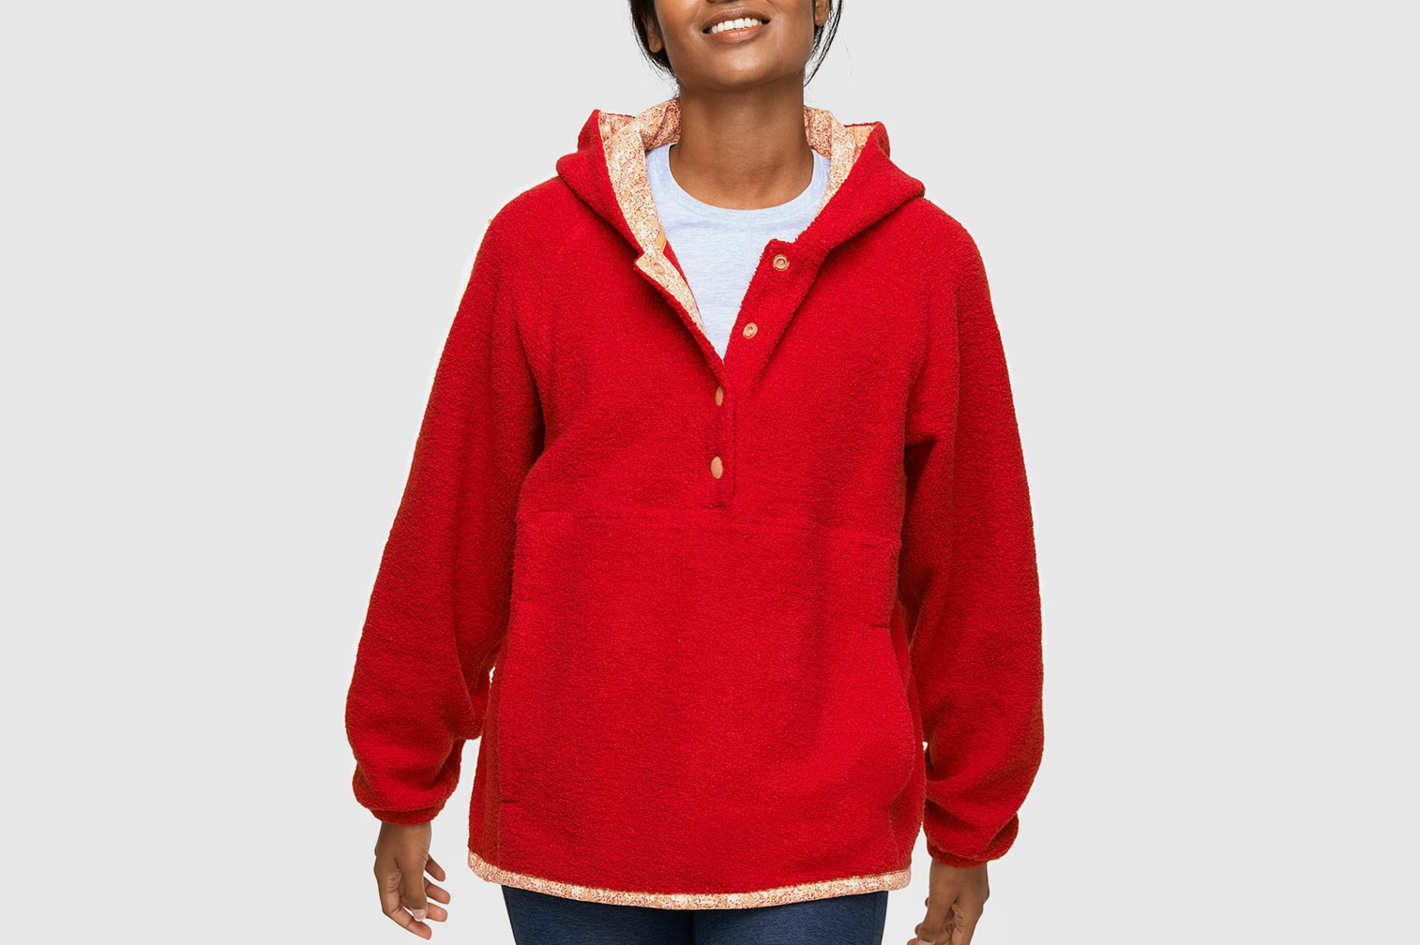 Outdoor Voices Fleece